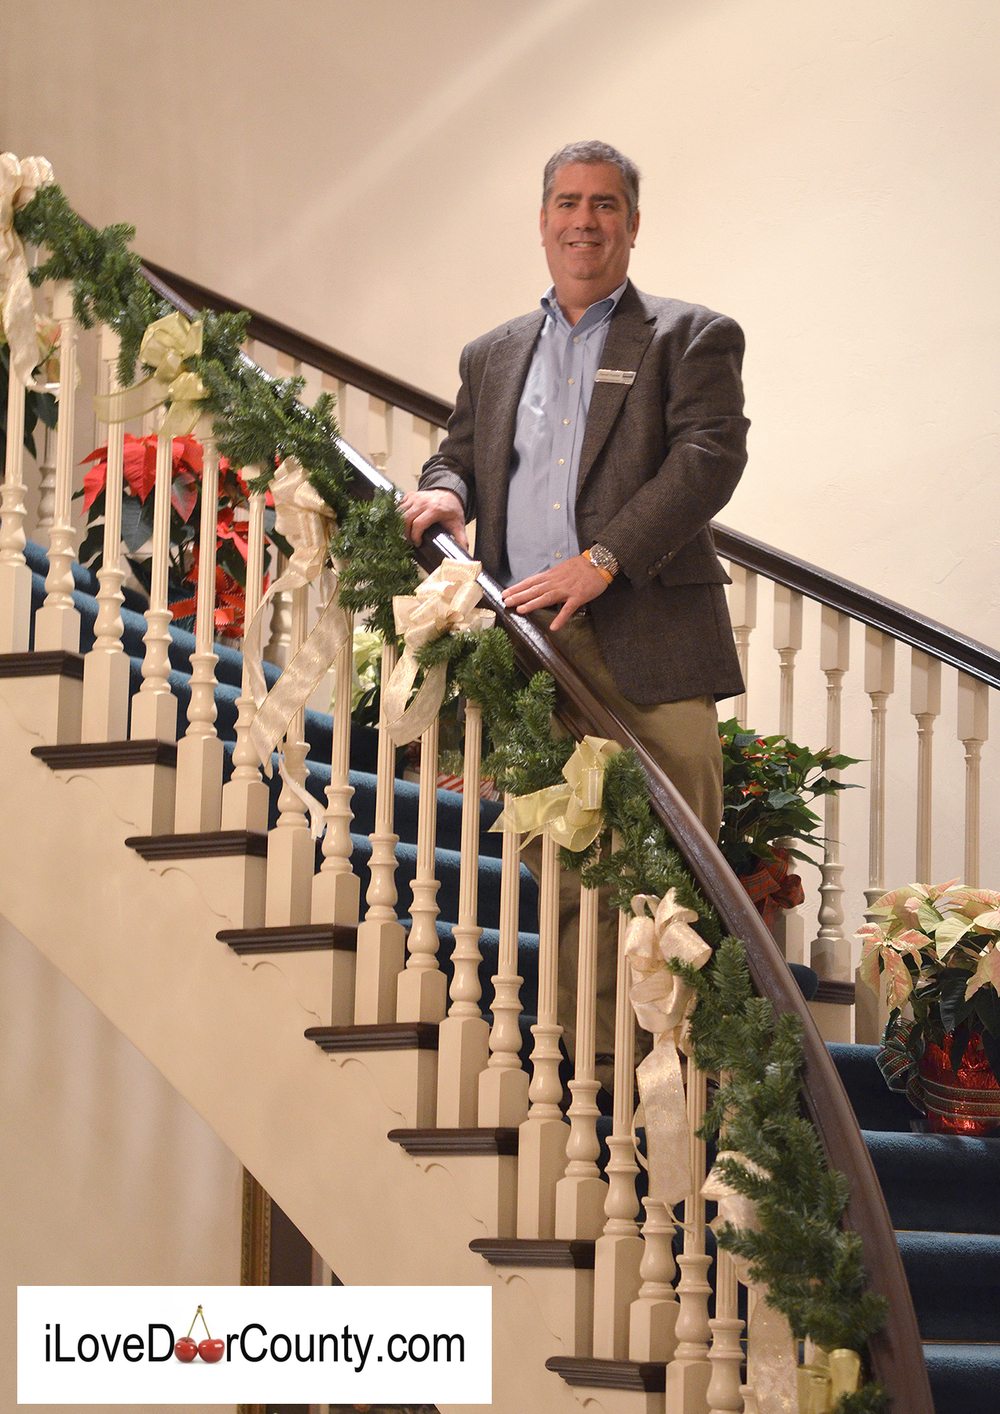 David Kaster  at  Ellison Bay Manor    hosting the Holiday Home Tour  to benefit  the  Northern Door County Children's Center